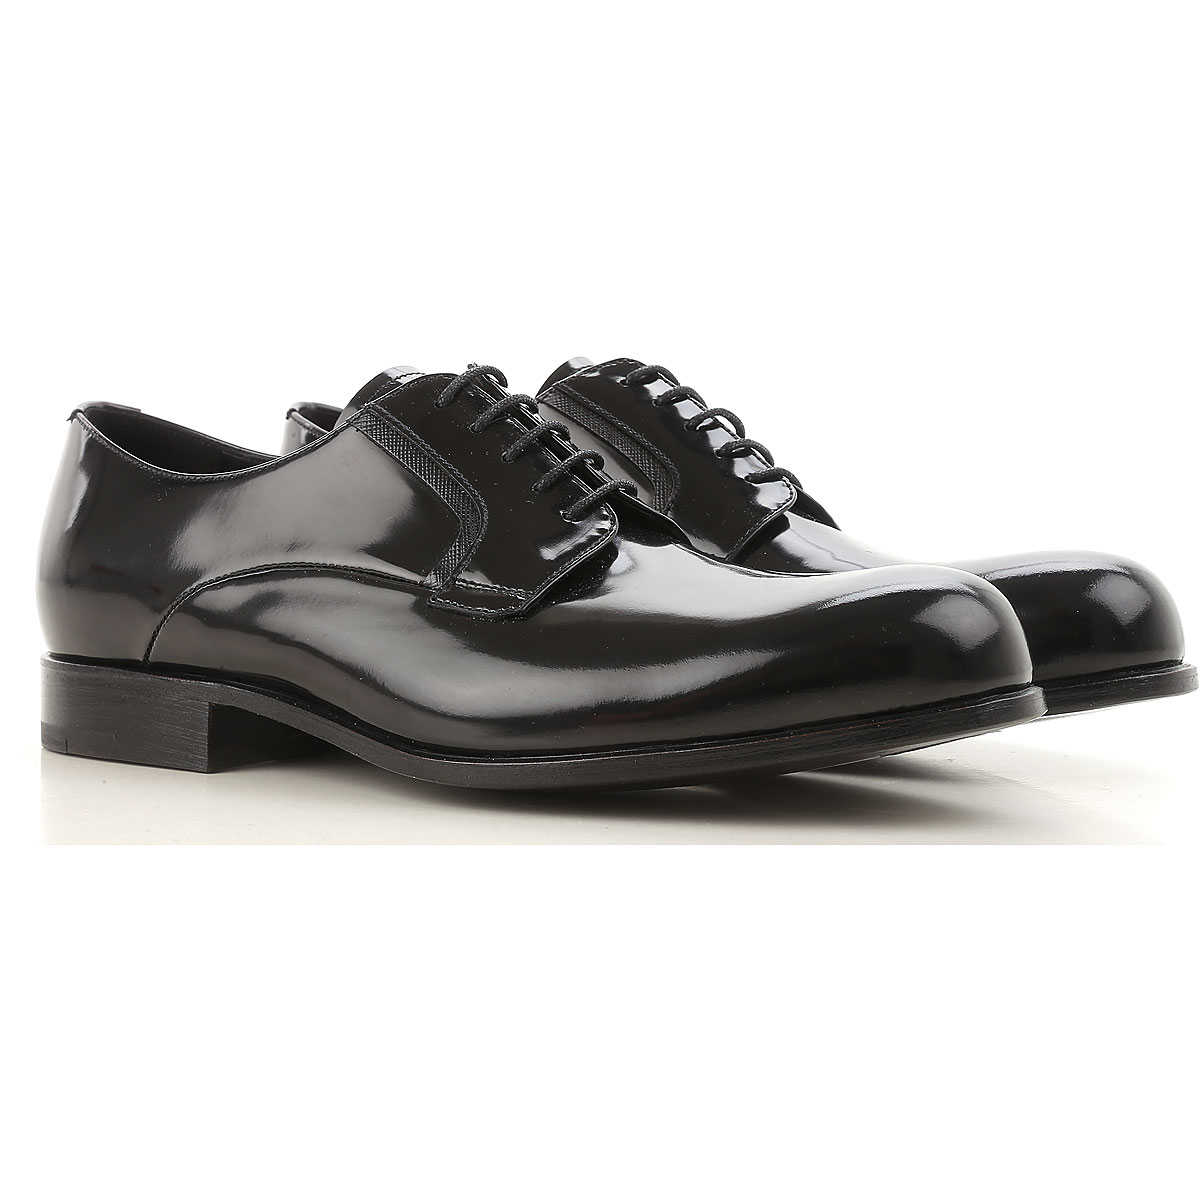 Prada Lace Up Shoes for Men Oxfords Derbies and Brogues On Sale in Outlet USA - GOOFASH